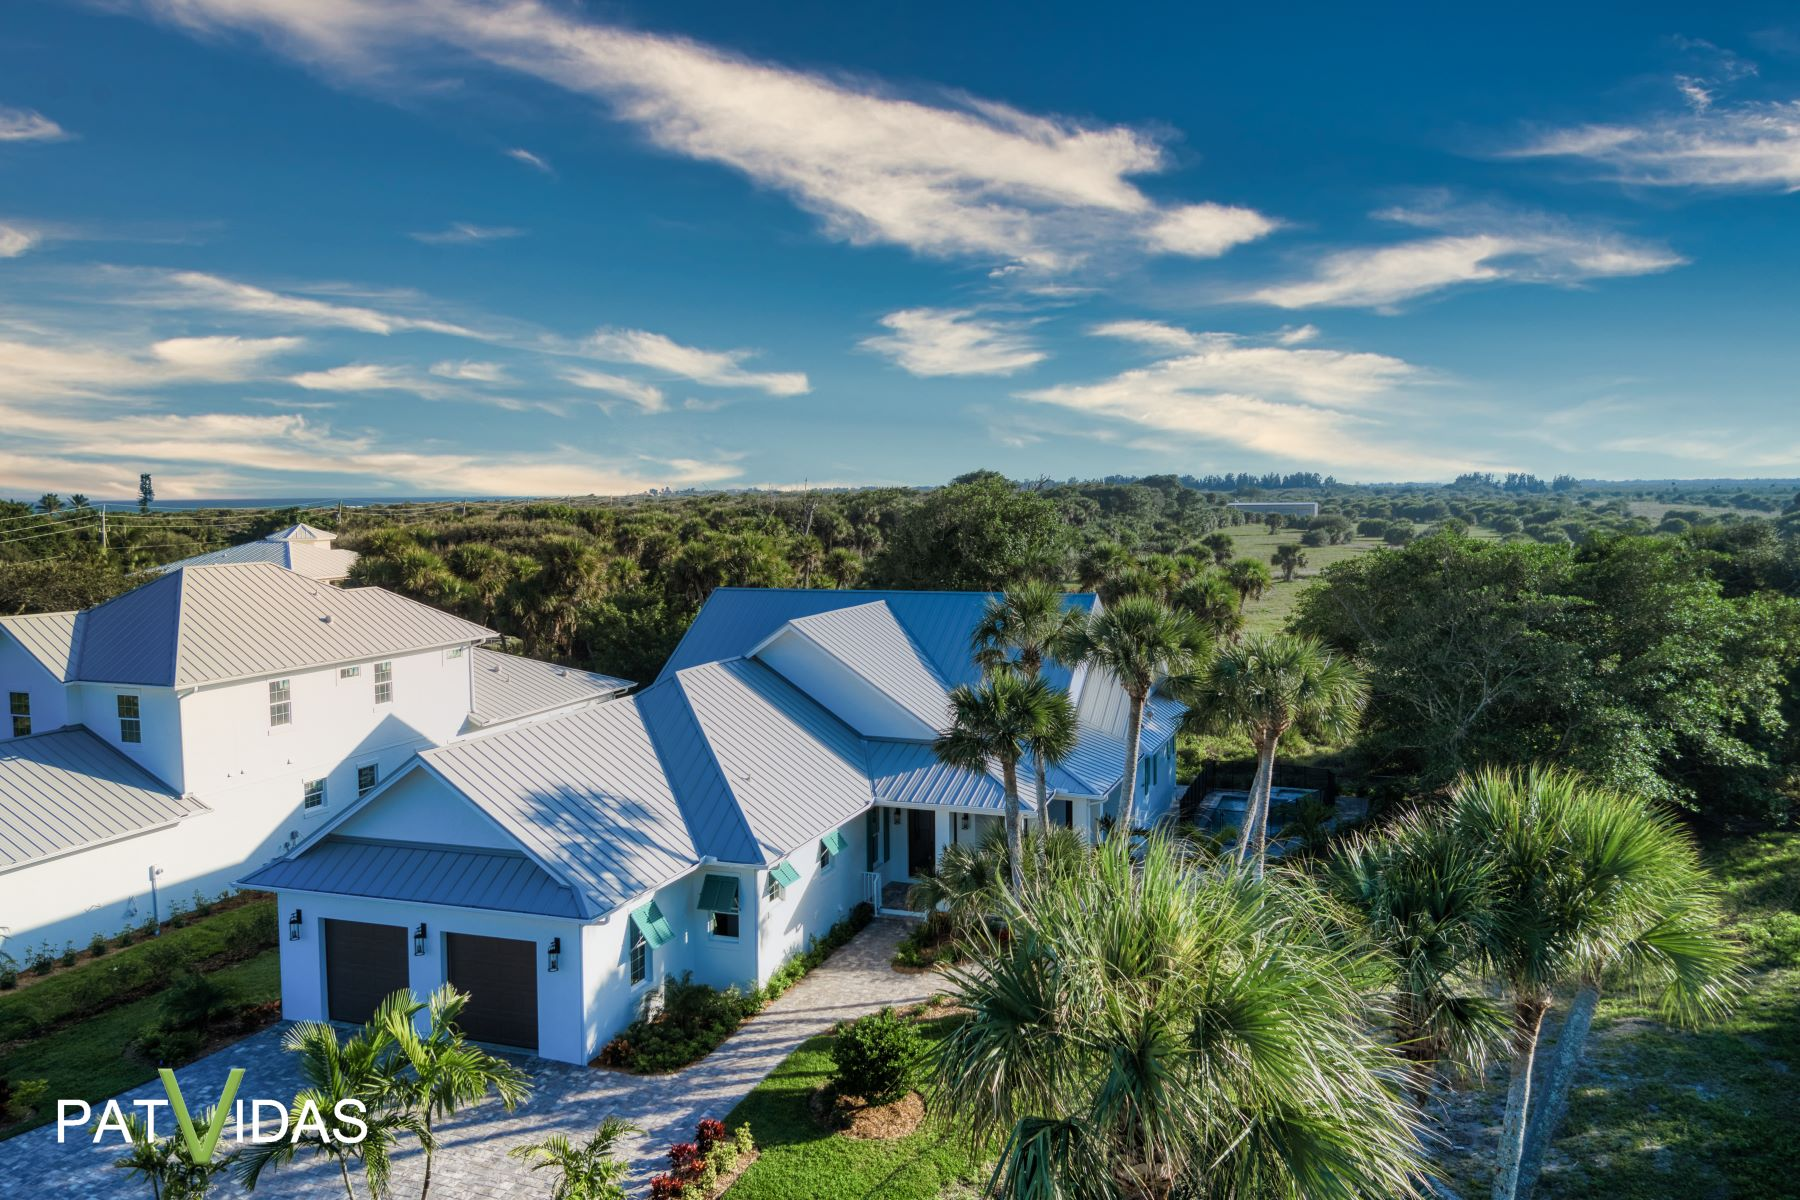 Single Family Homes for Sale at 11735 Brown Pelican Way Vero Beach, Florida 32963 United States